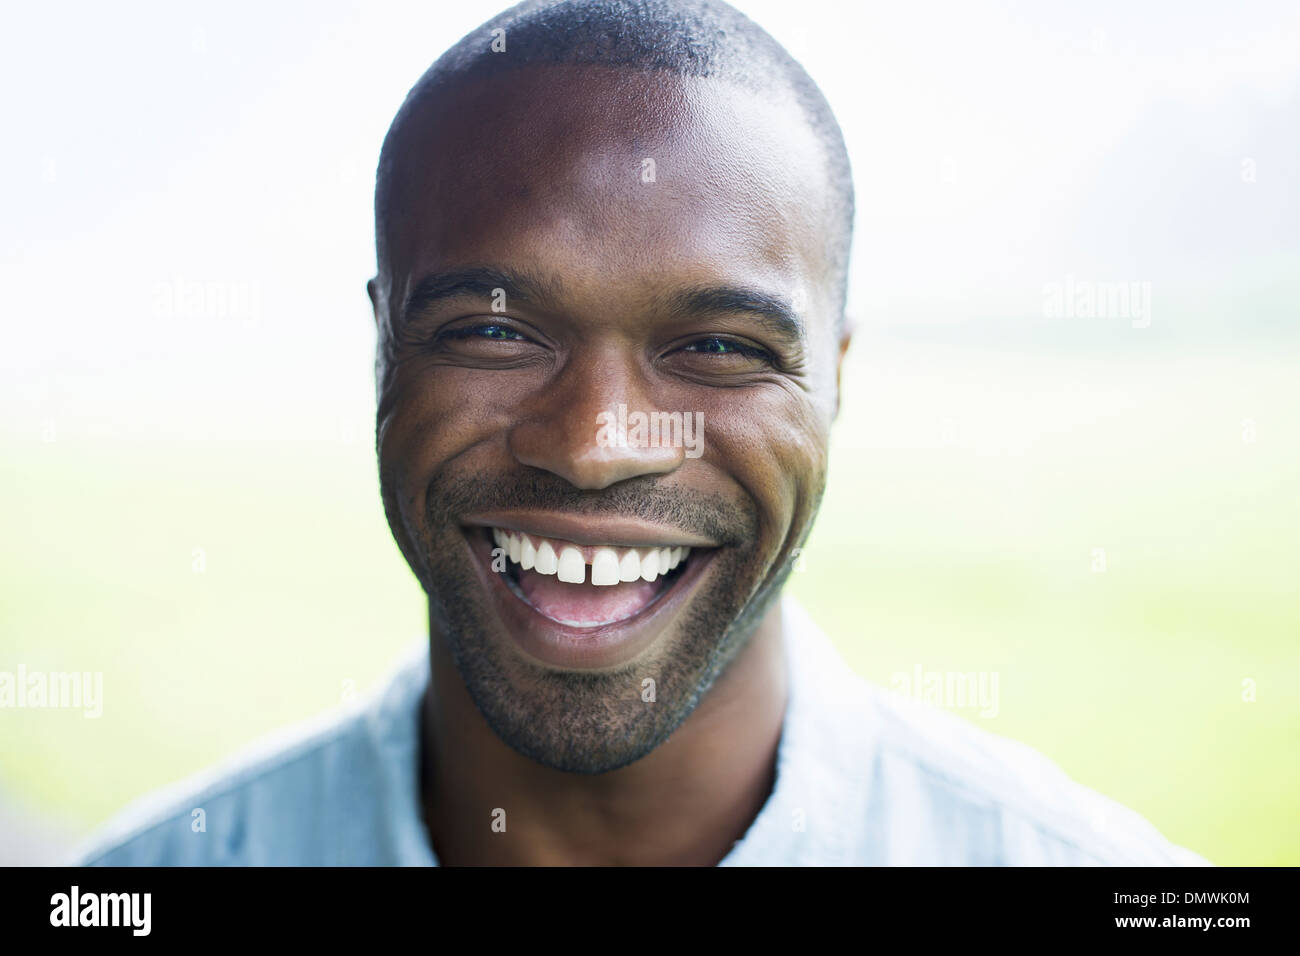 A young man in a blue shirt laughing. - Stock Image